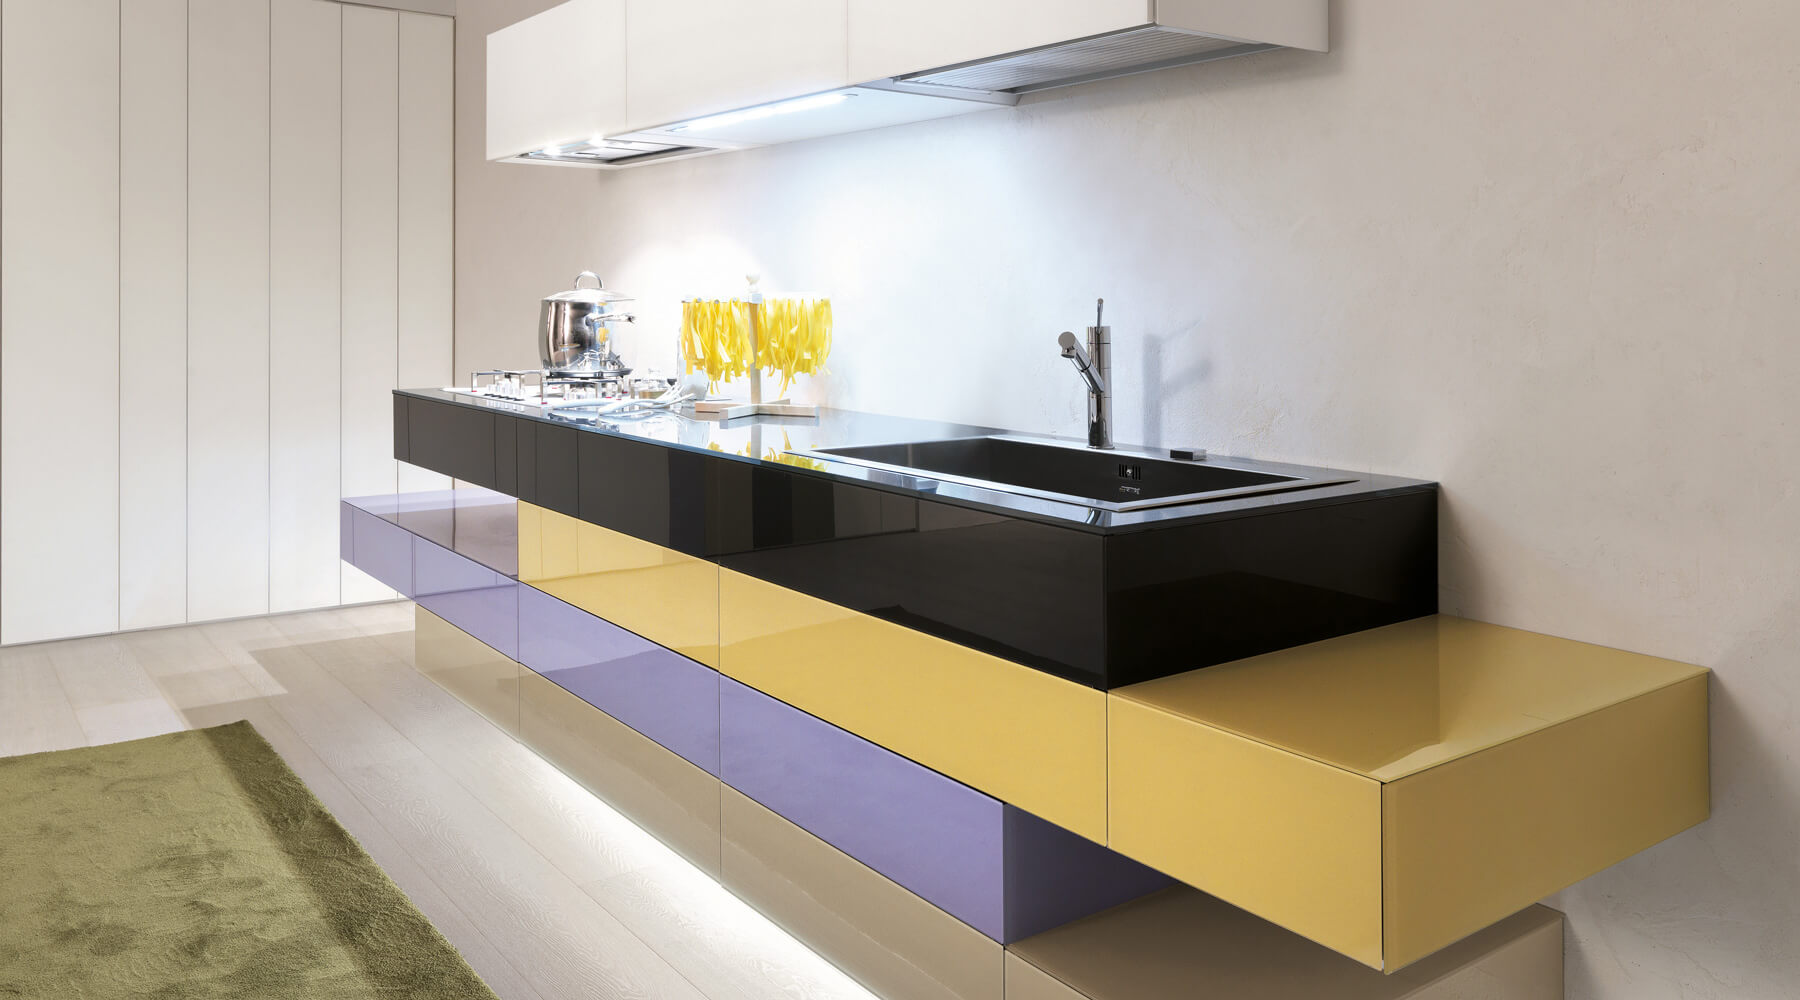 cucine lago catalogo - 28 images - awesome cucine lago catalogo ...